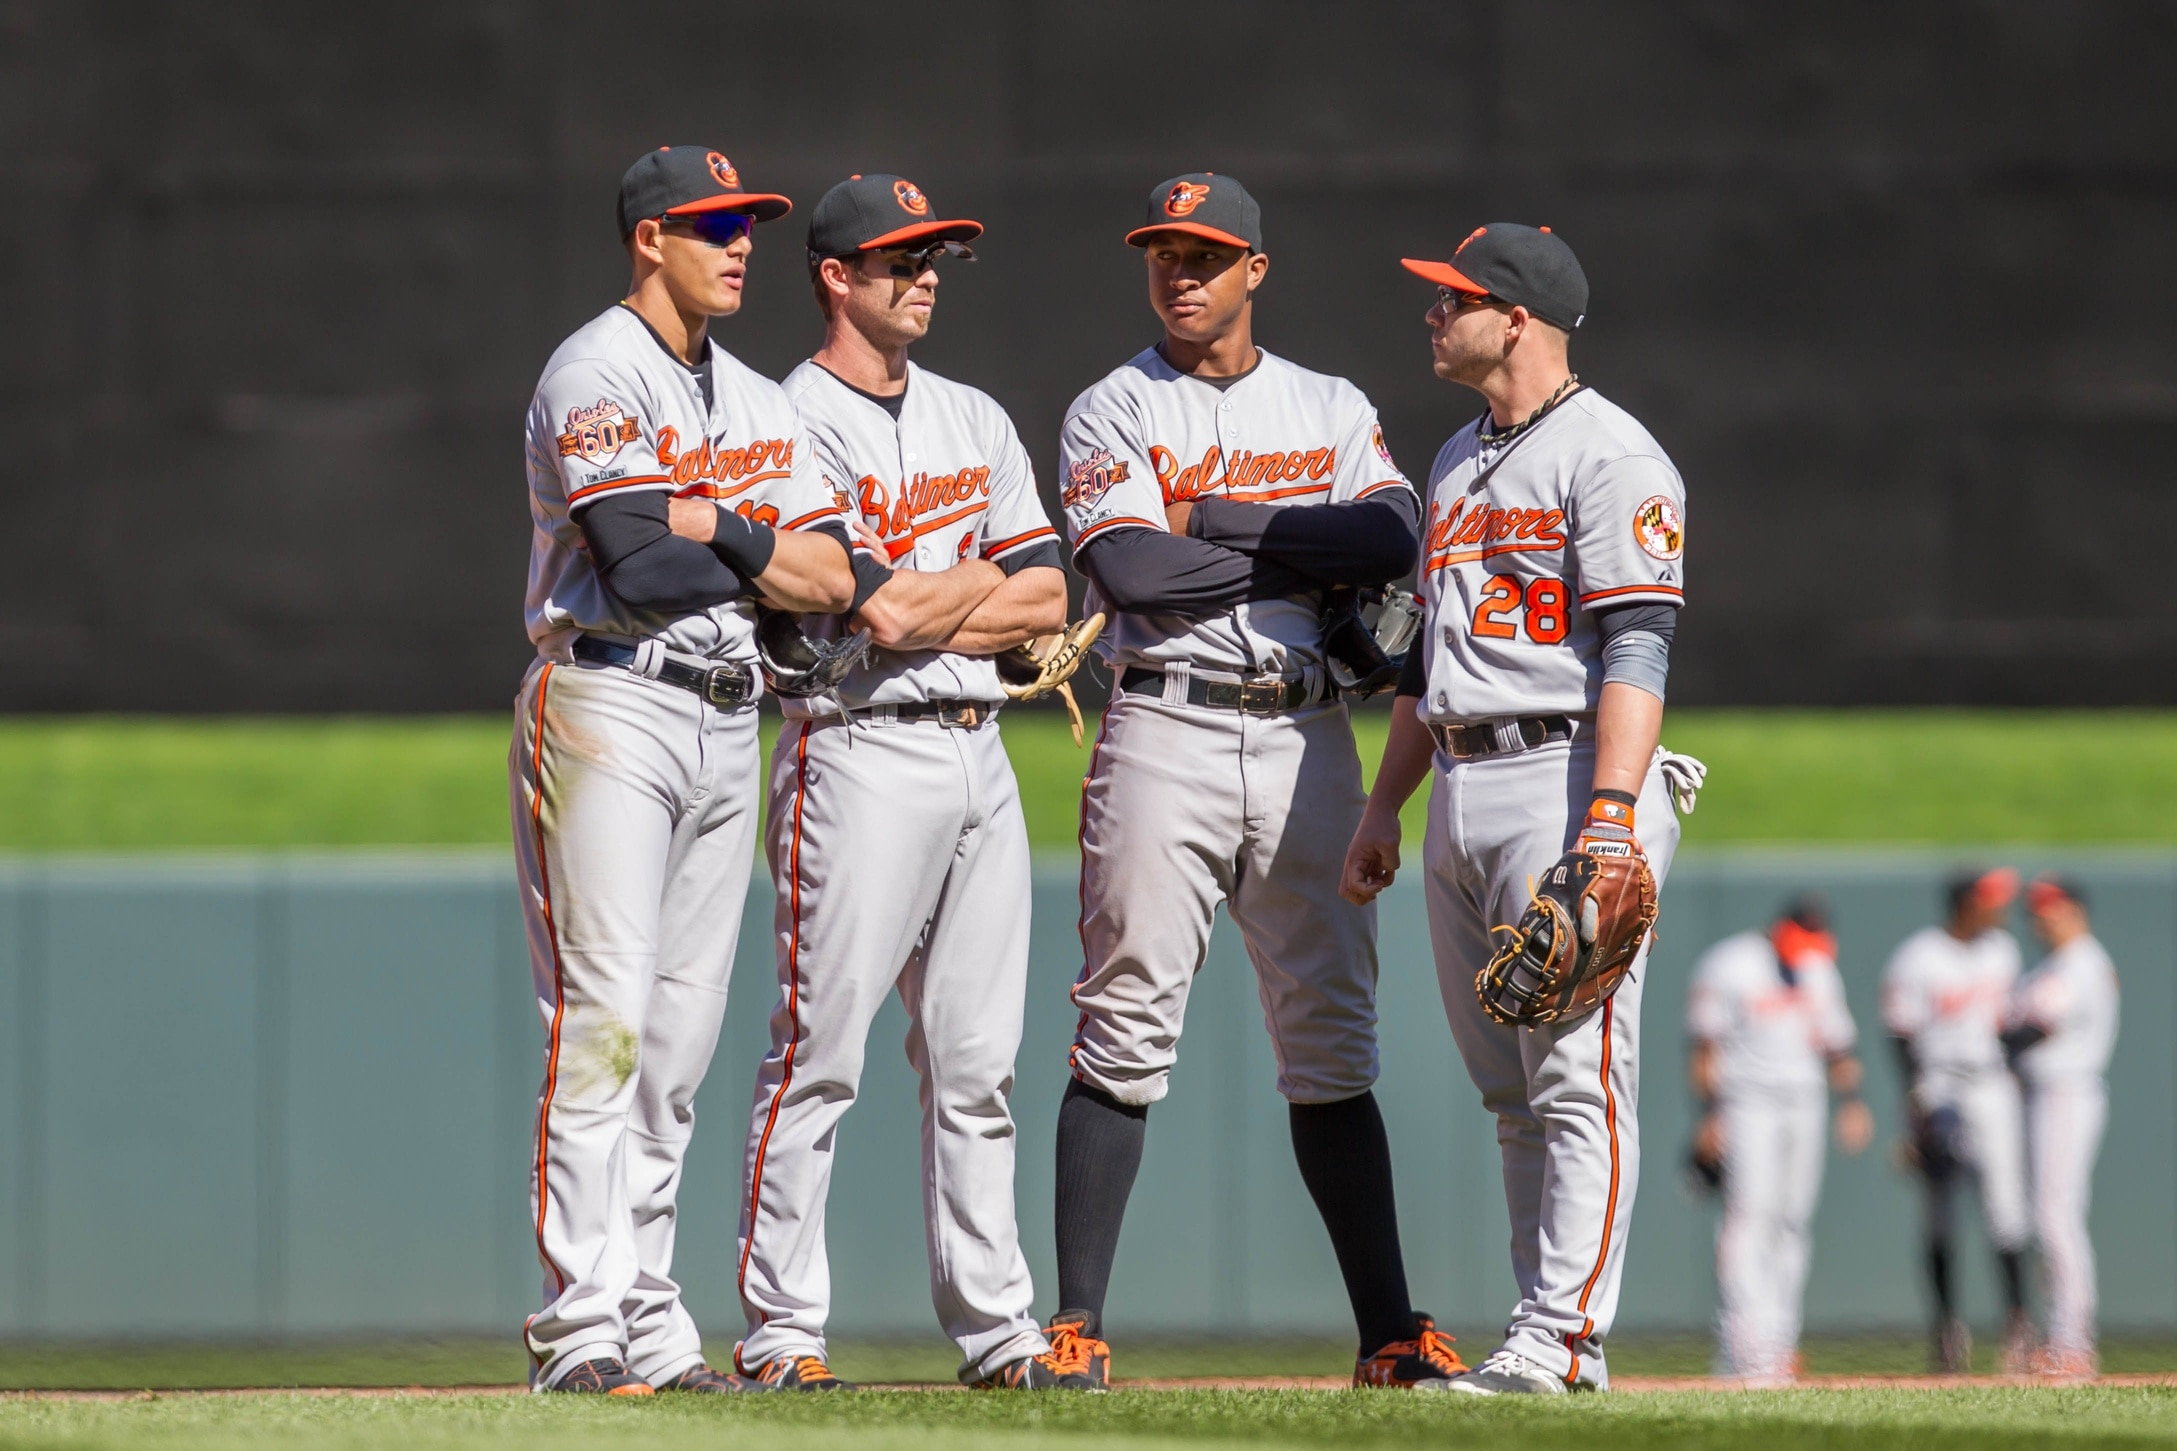 Baltimore Orioles Defense Outstanding in the Field